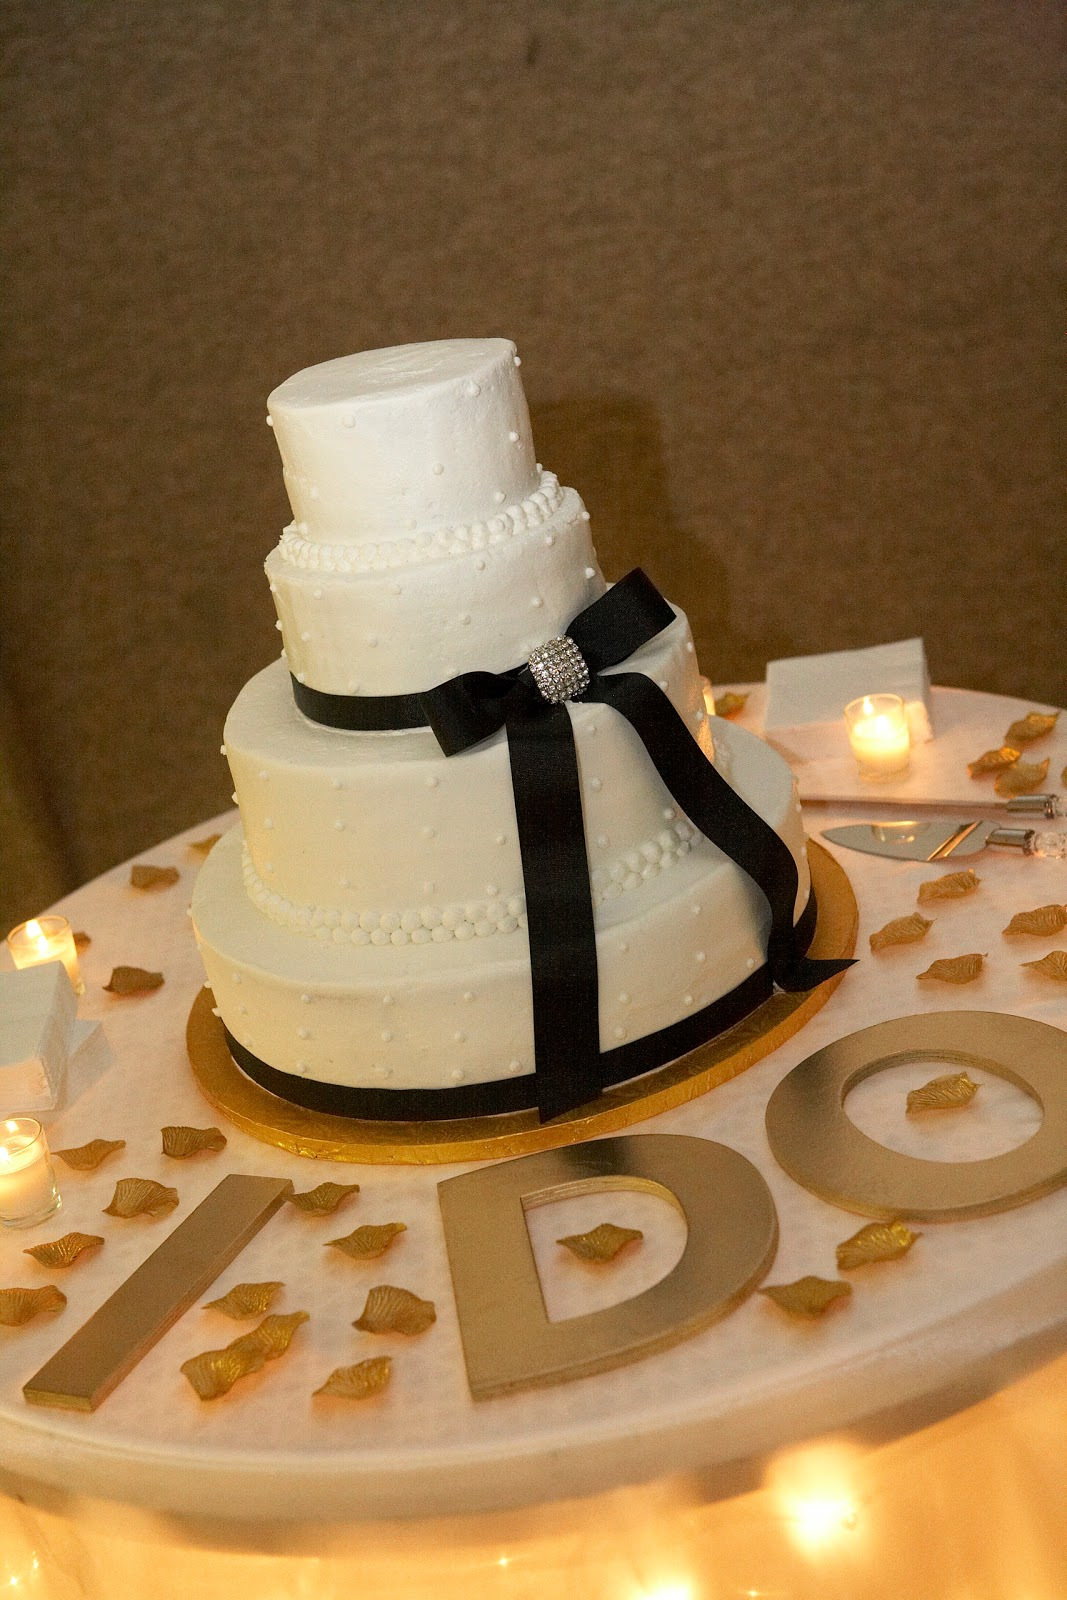 Cake Table Decoration Images : Wedding Cake Display Table on Pinterest Cake Table ...